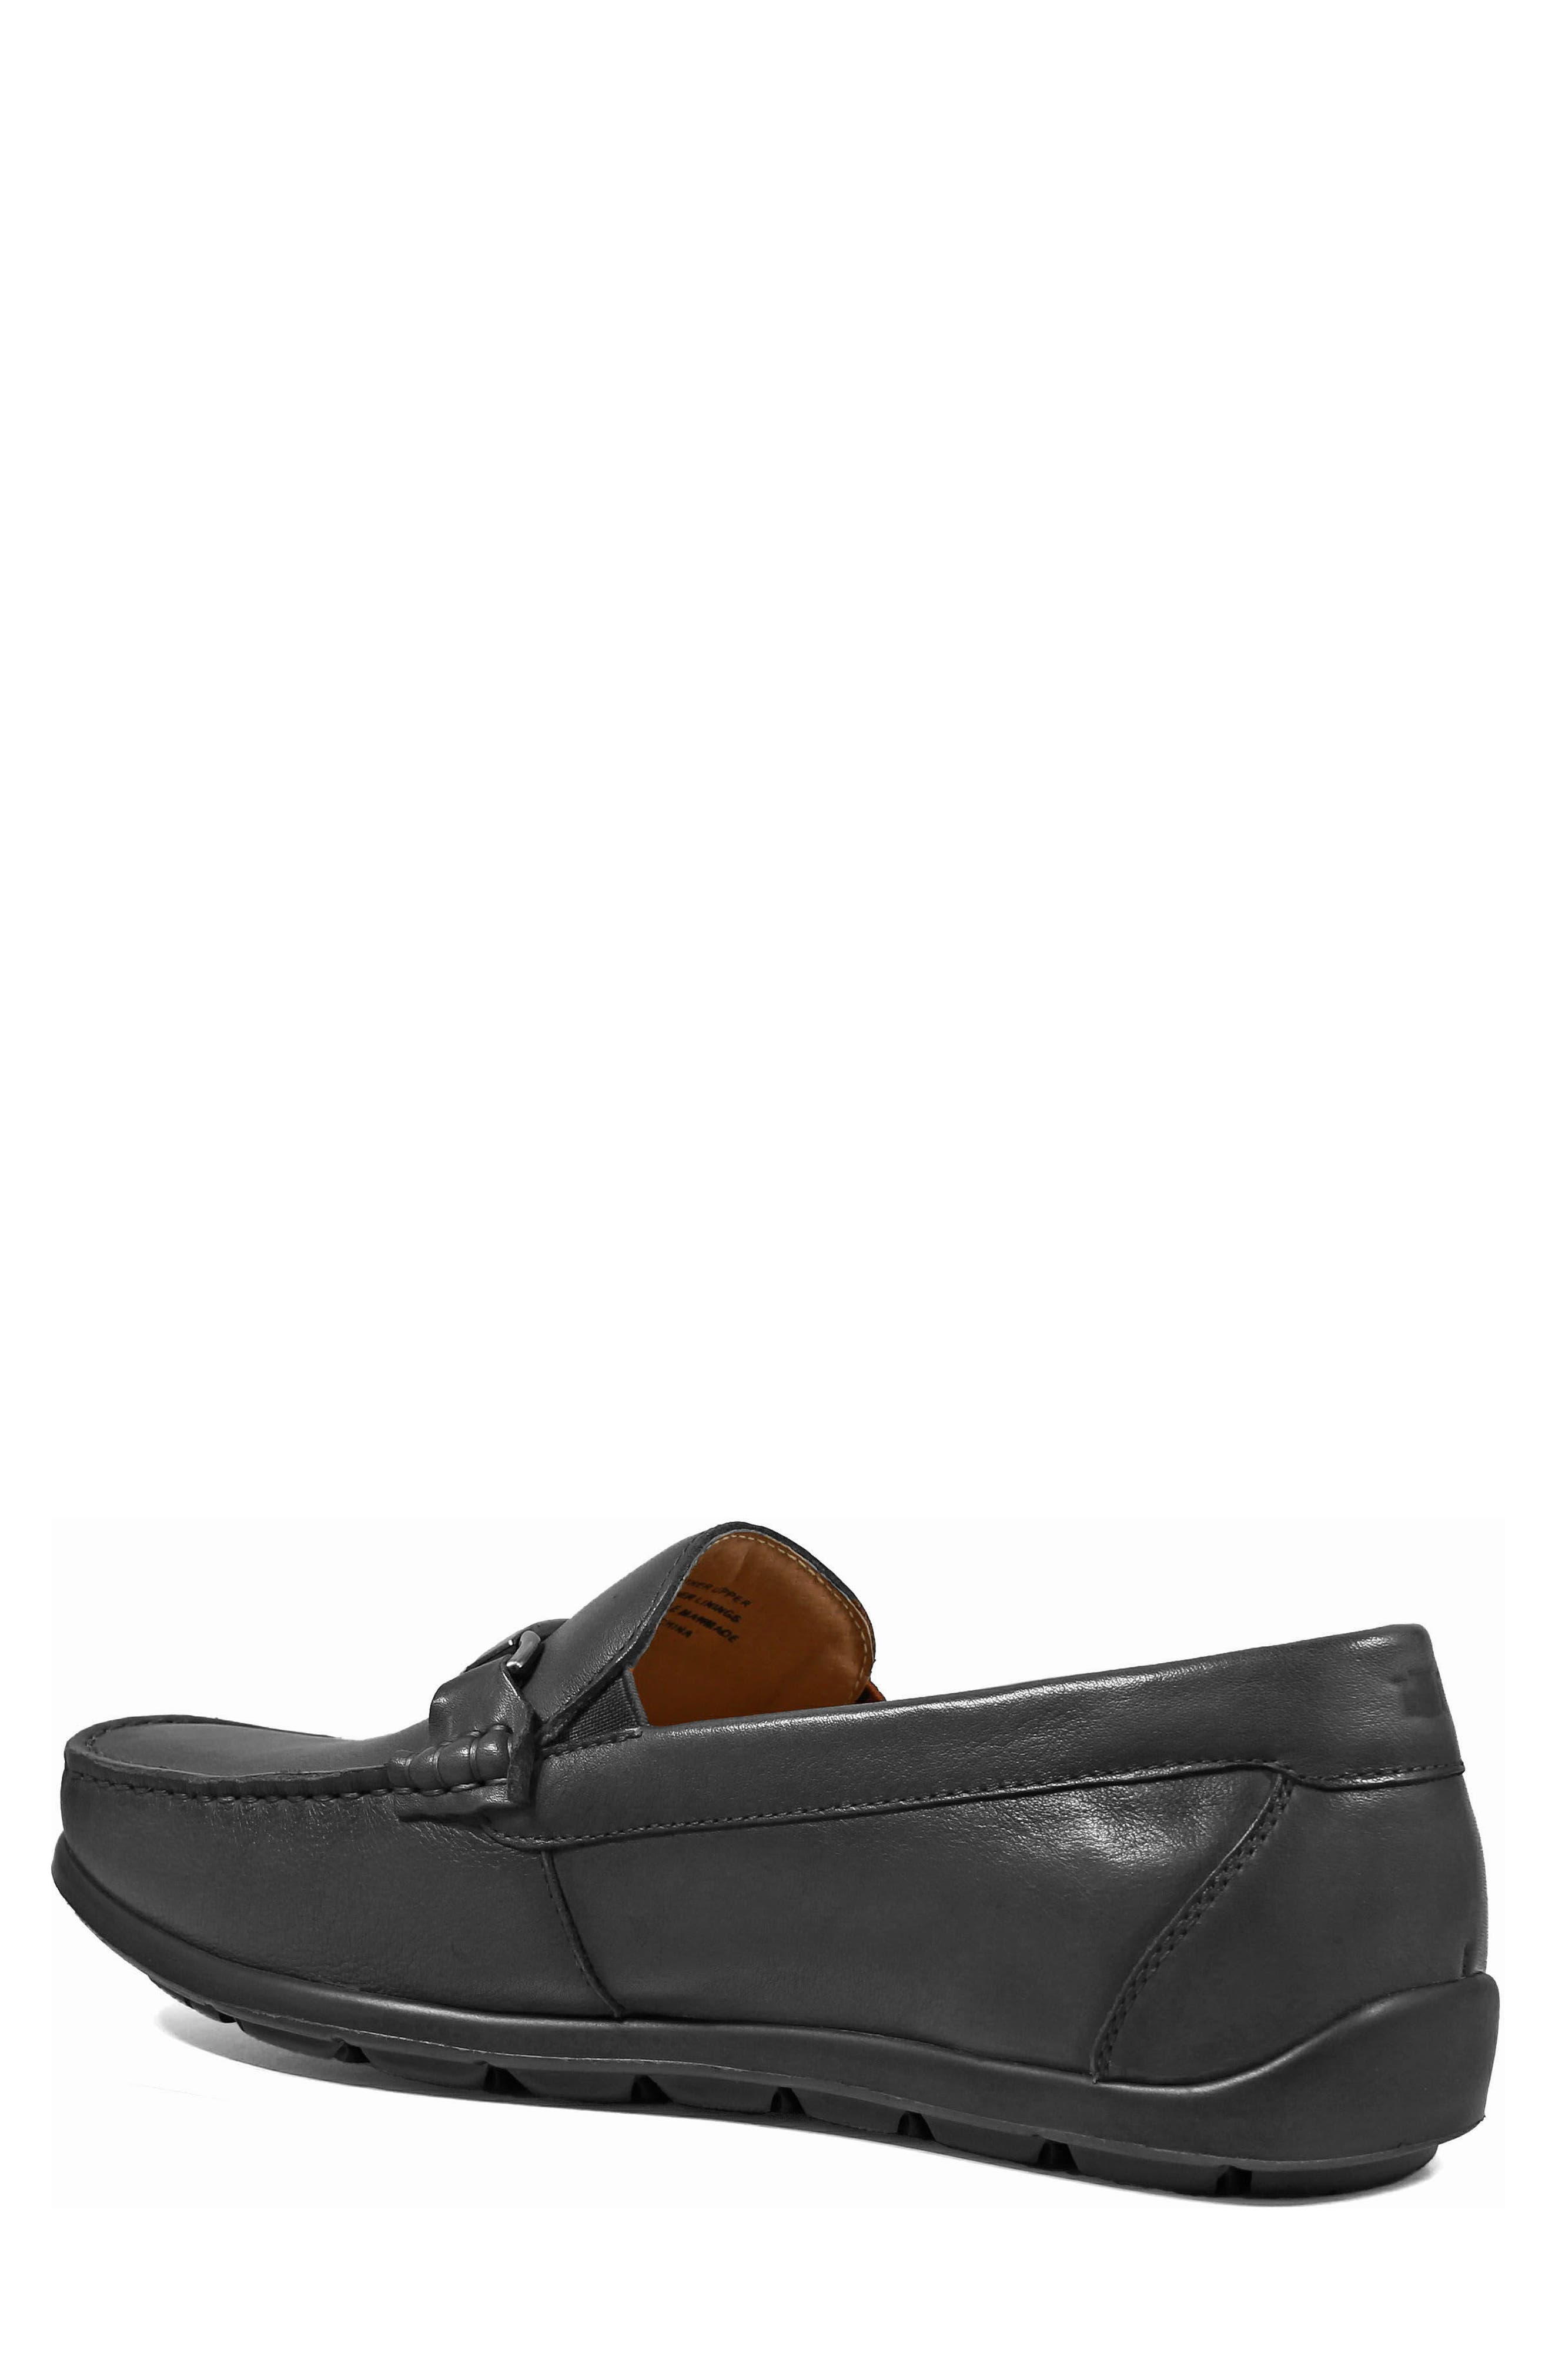 Comfortech Bit Loafer,                             Alternate thumbnail 2, color,                             Black Smooth